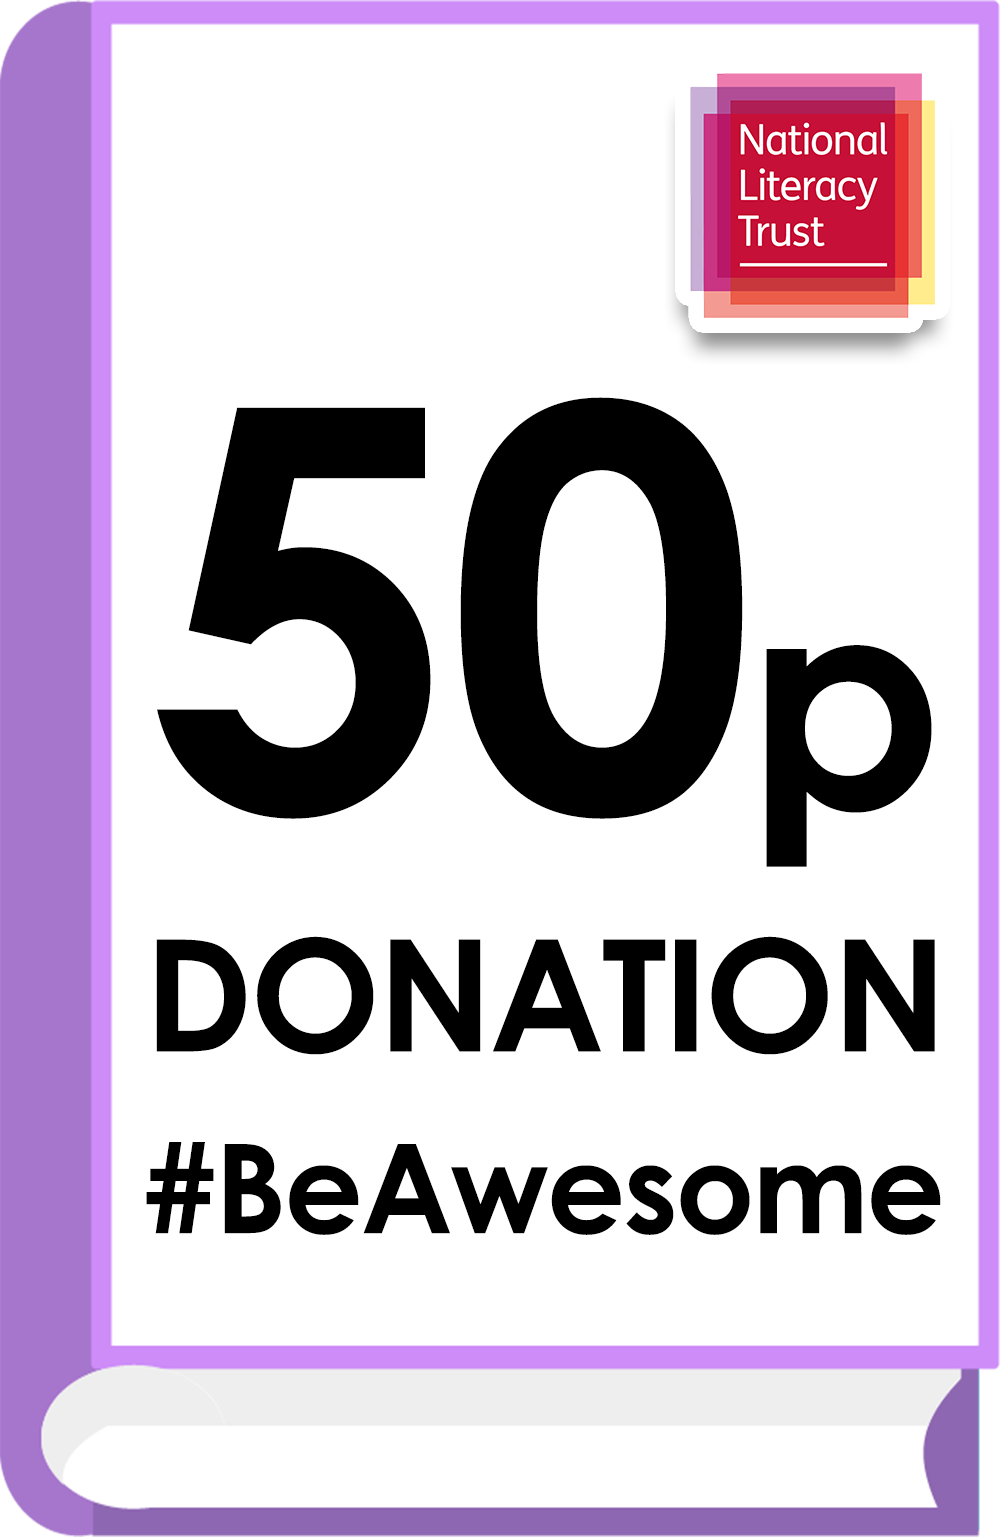 Donate £0.50 Pounds to the National Literacy Trust (Covid Impact Appeal Campaign)